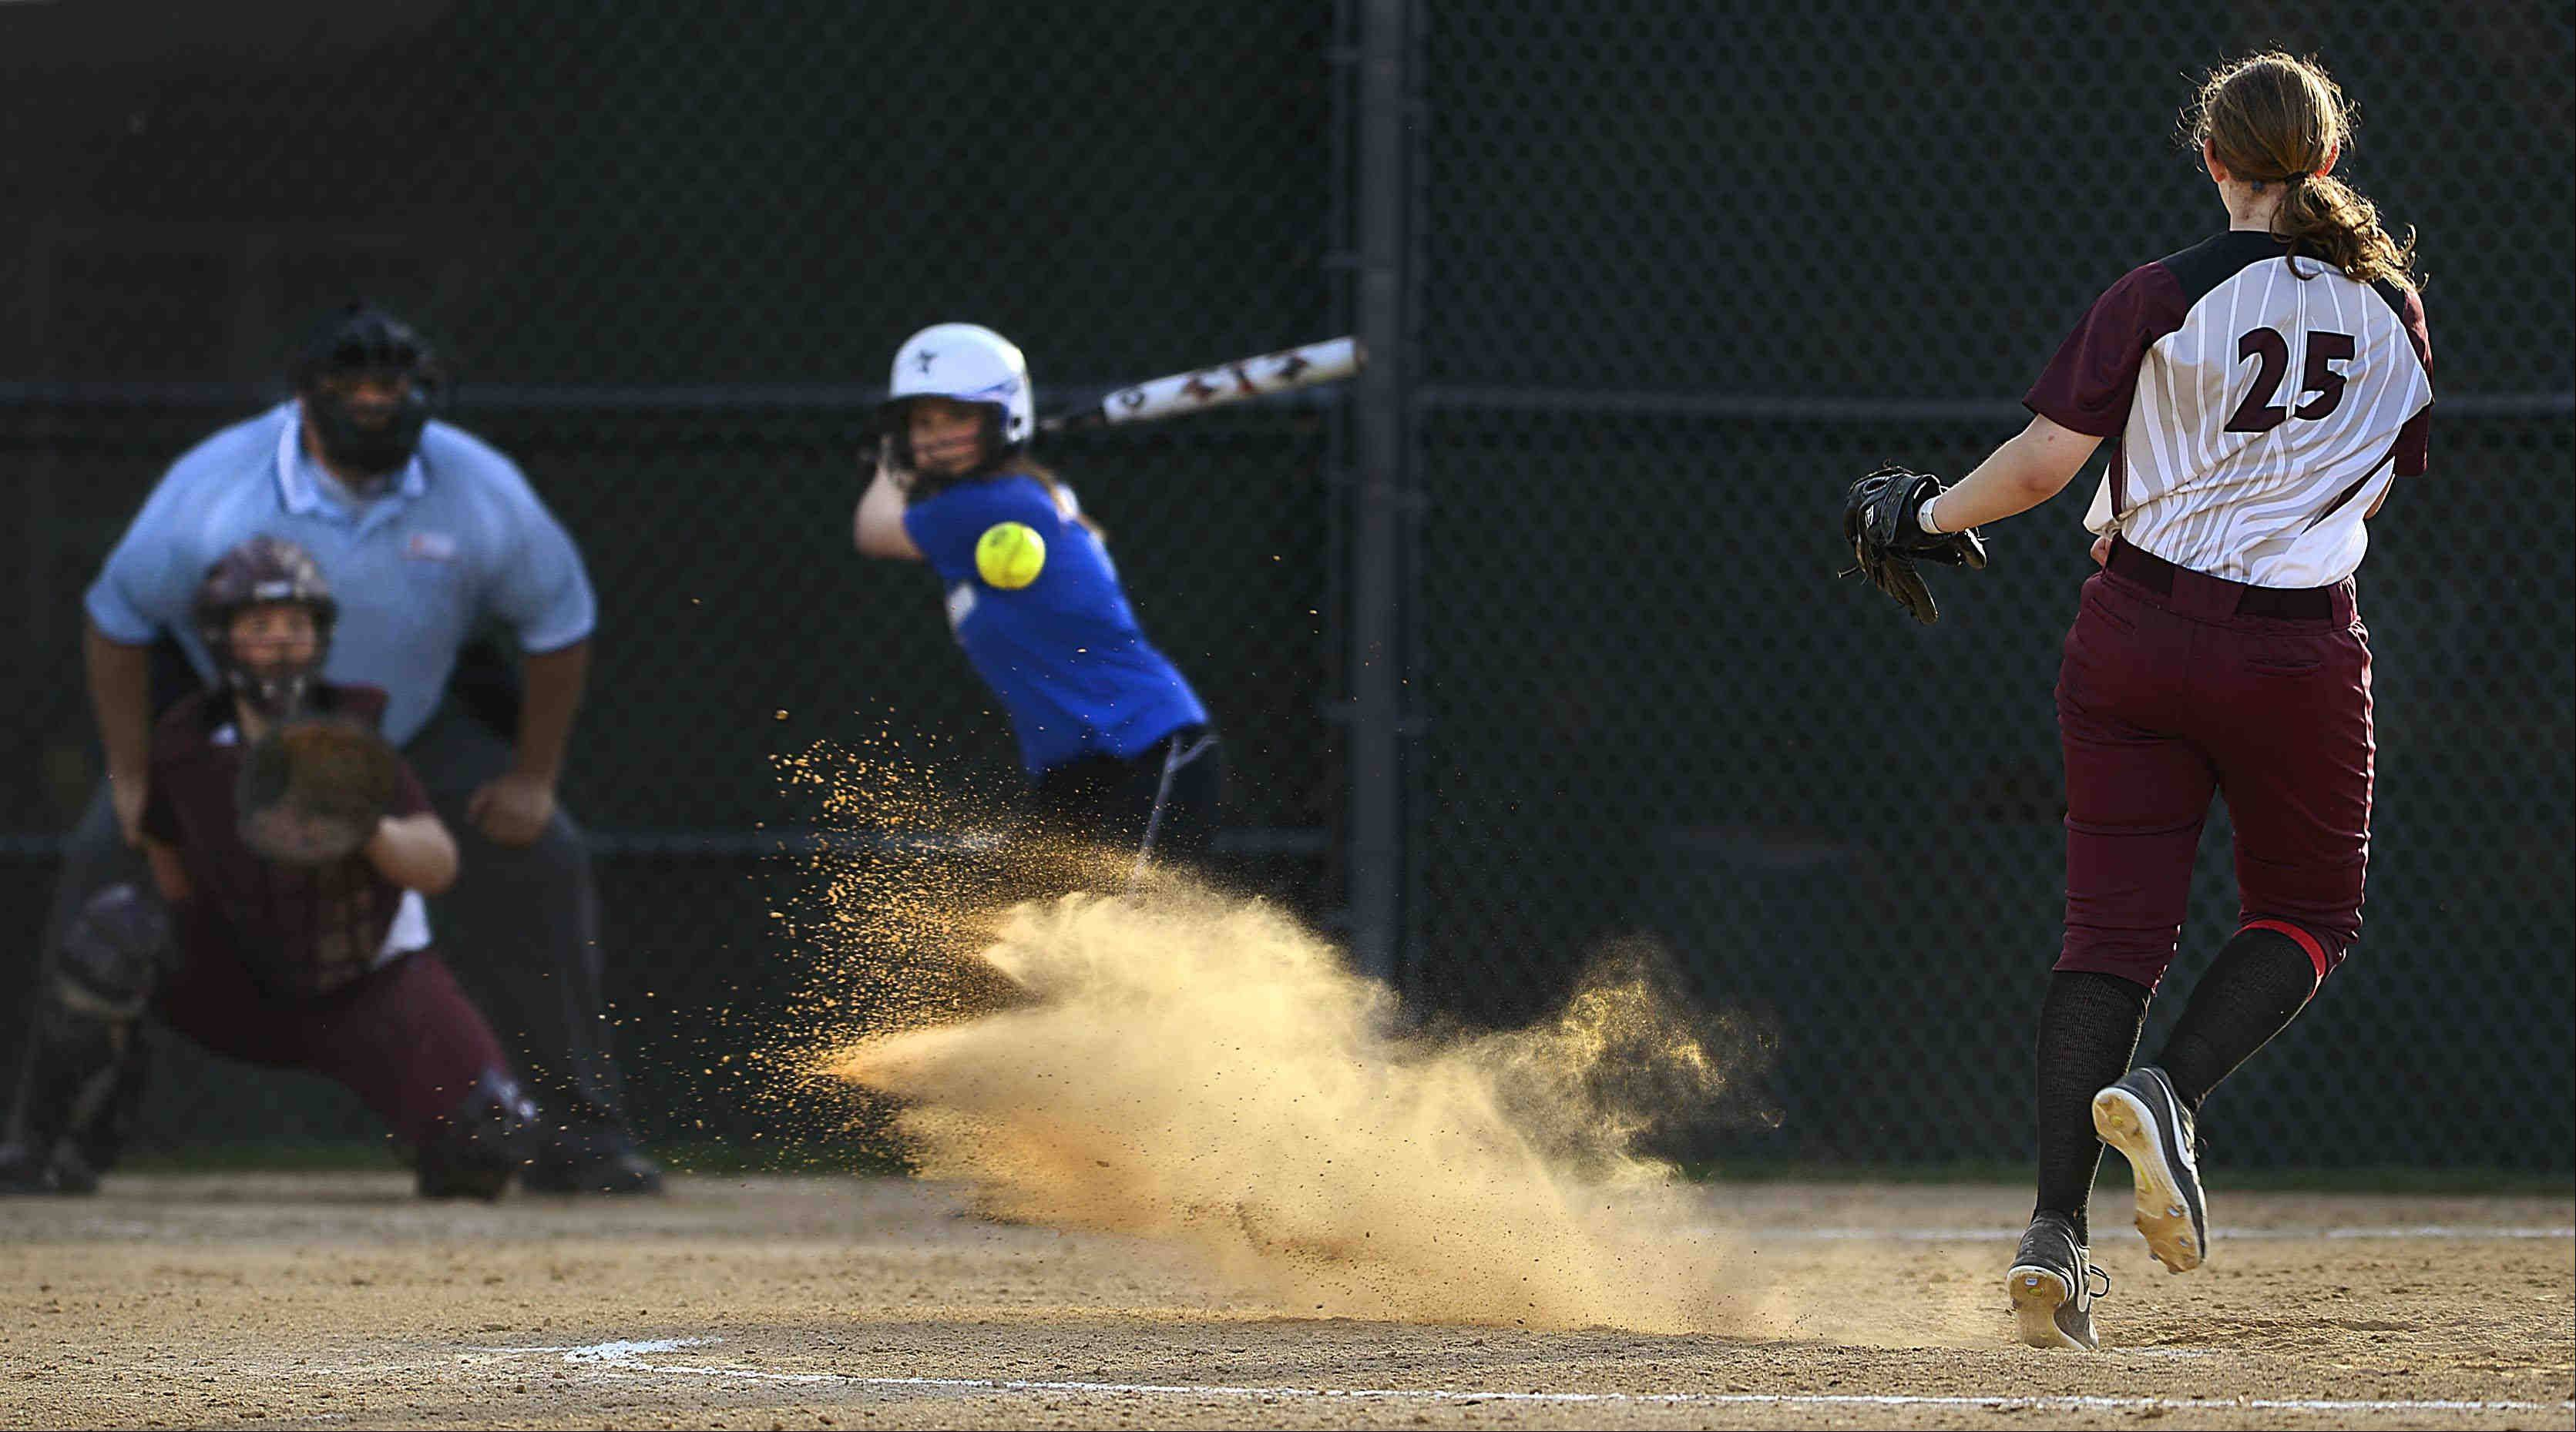 Elgin's Jessica Rago kicks up a cloud of dust as she delivers to St. Charles North's Allison Hausl Tuesday in Elgin. Hausl grounded out to end the seventh.